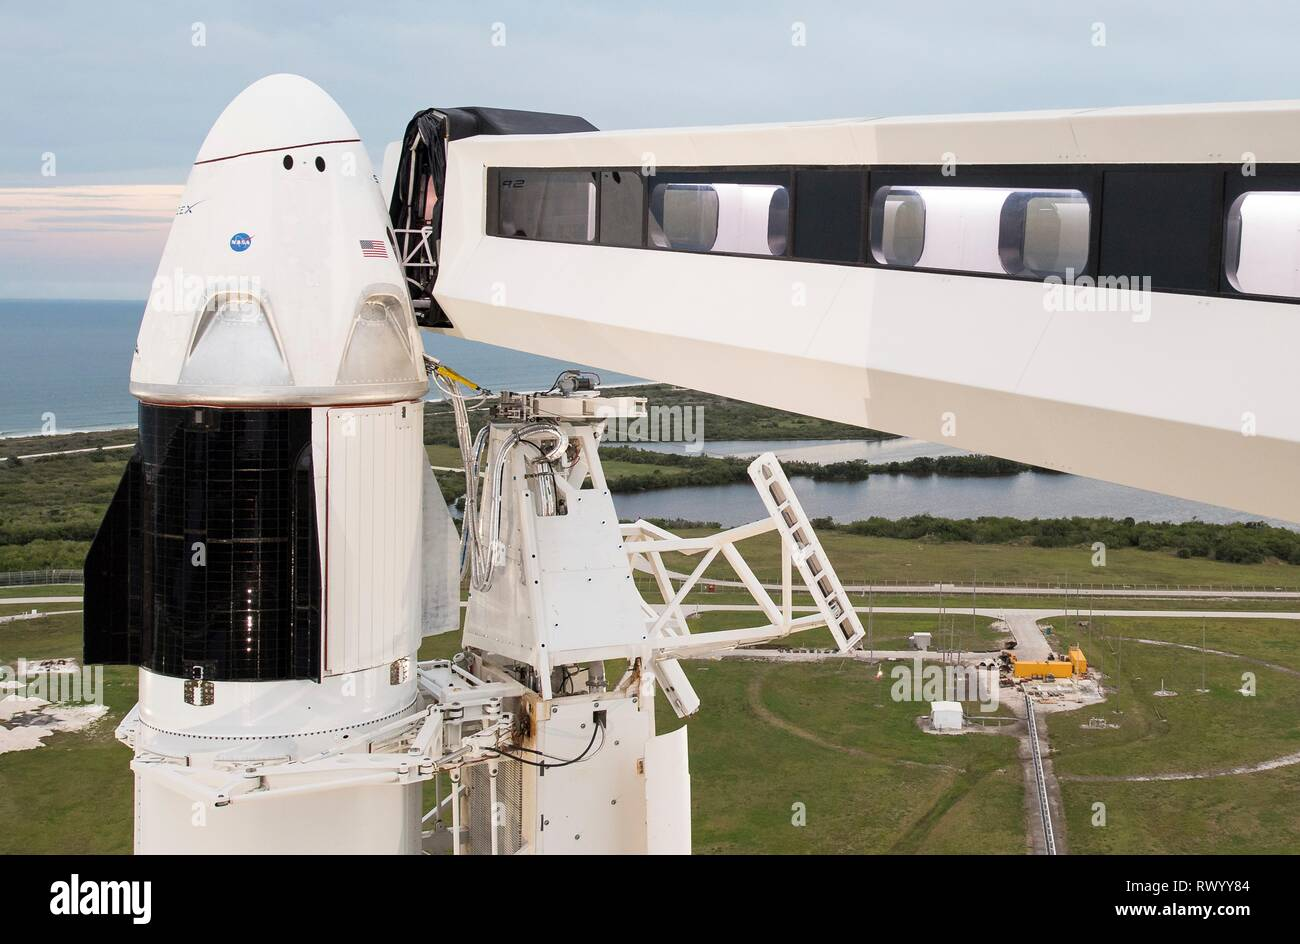 Die SpaceX Crew Dragon Raumfahrzeug auf dem Falcon 9 Rakete und Crew Zugriff auf der Startrampe von Launch Complex 39A bereit für den Start der Demo-1-Mission im Kennedy Space Center März 1, 2019 in Cape Canaveral, Florida. Stockbild